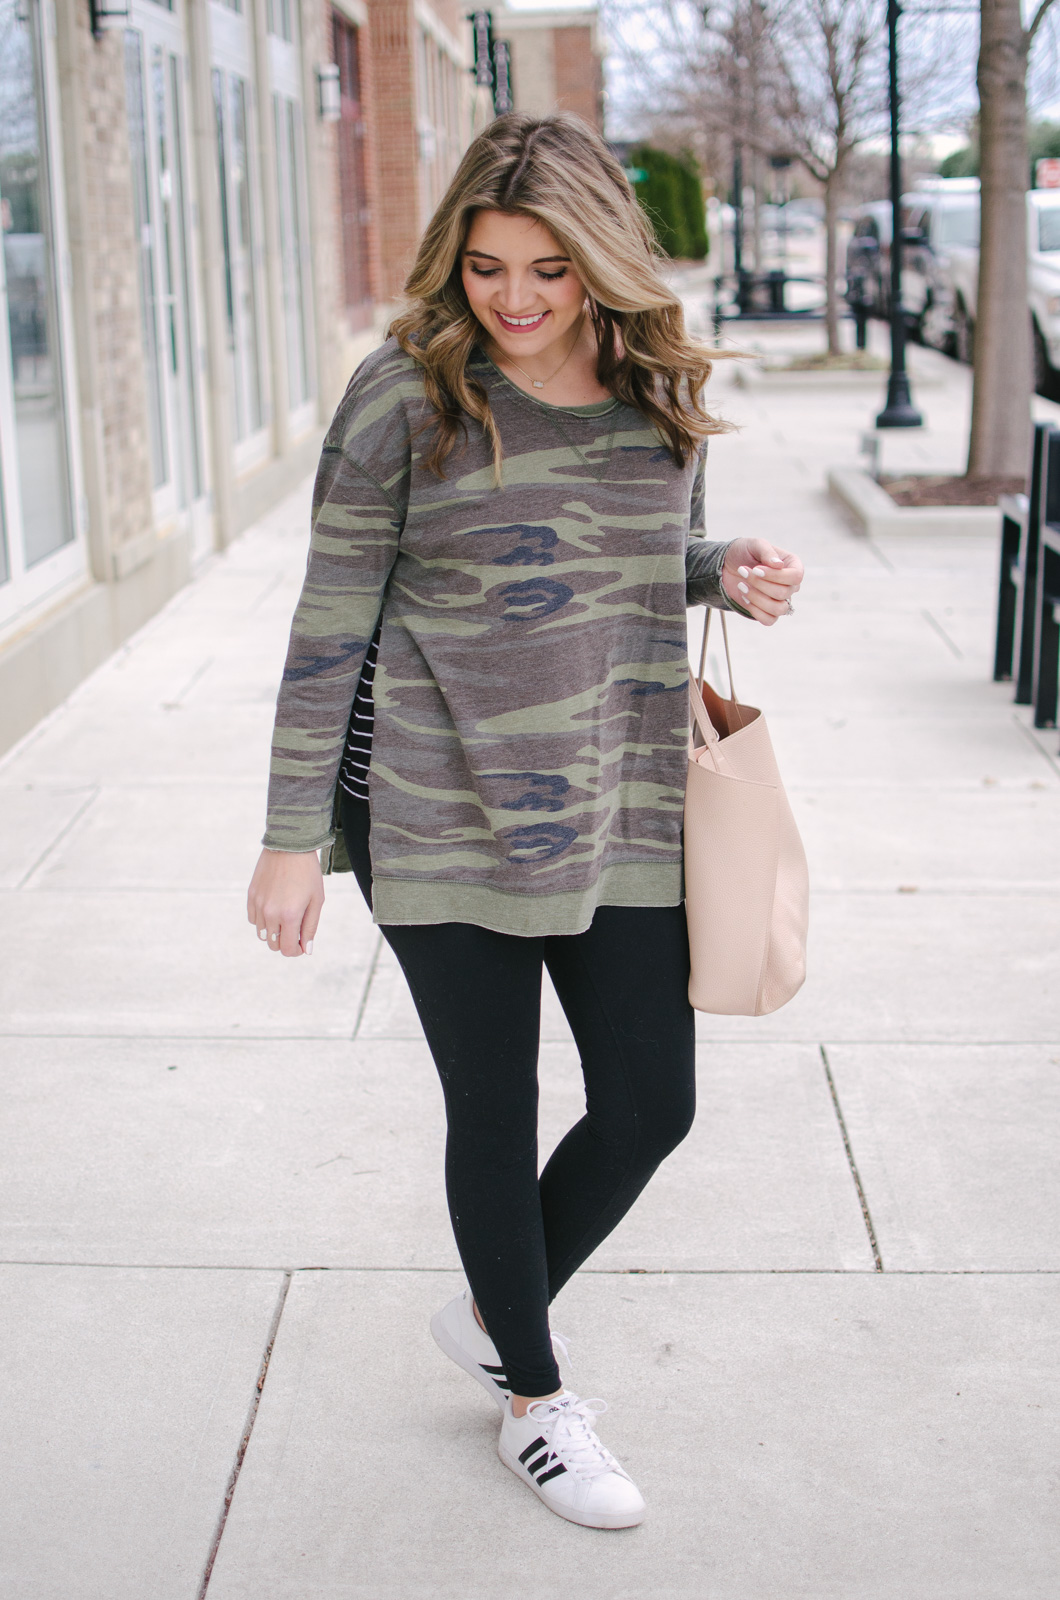 innovative leggings and top outfits movies